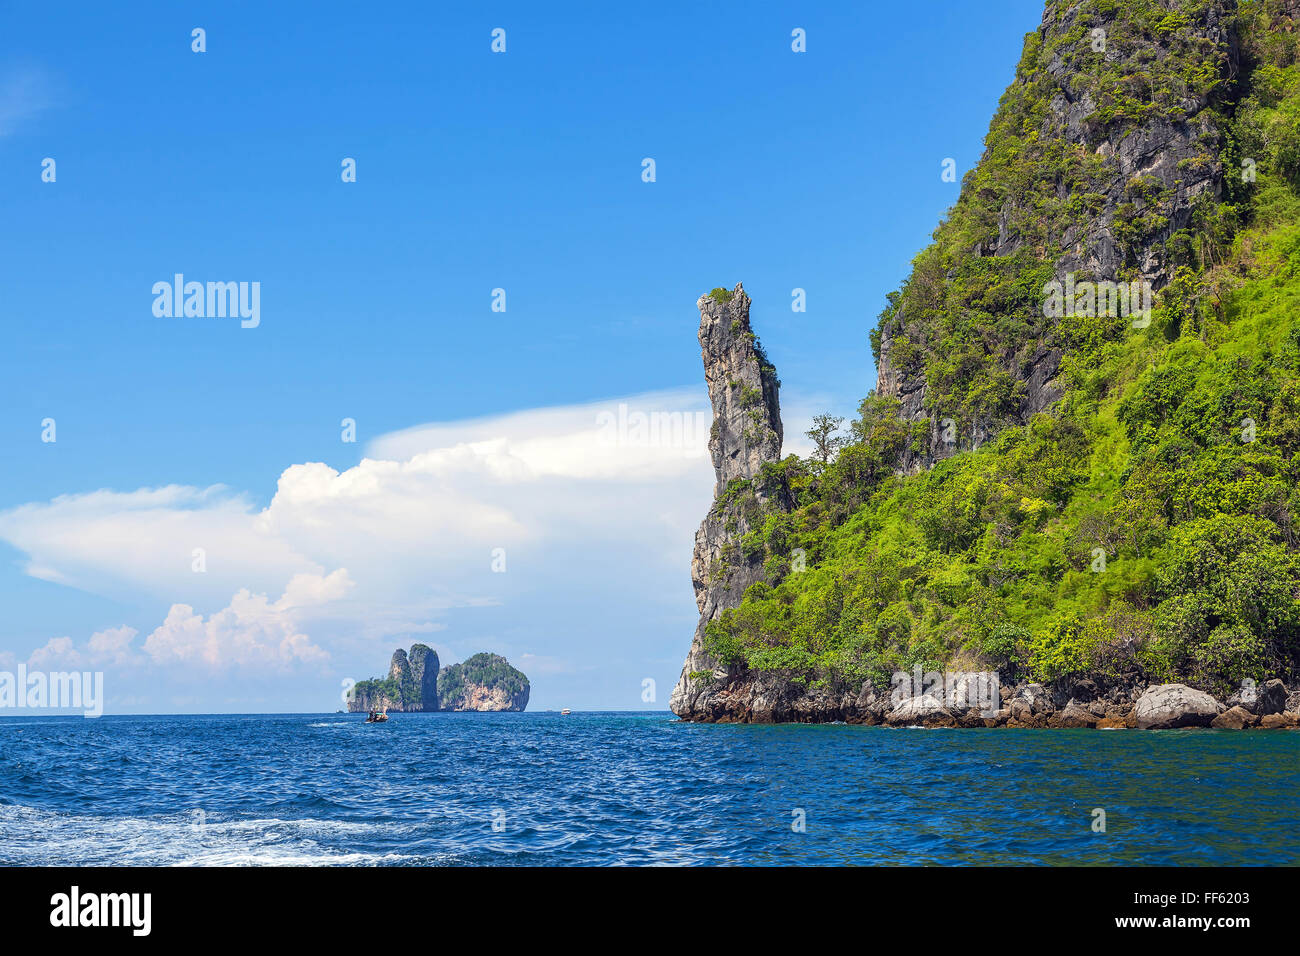 Tropical islands of the Andaman Sea in Thailand - Stock Image